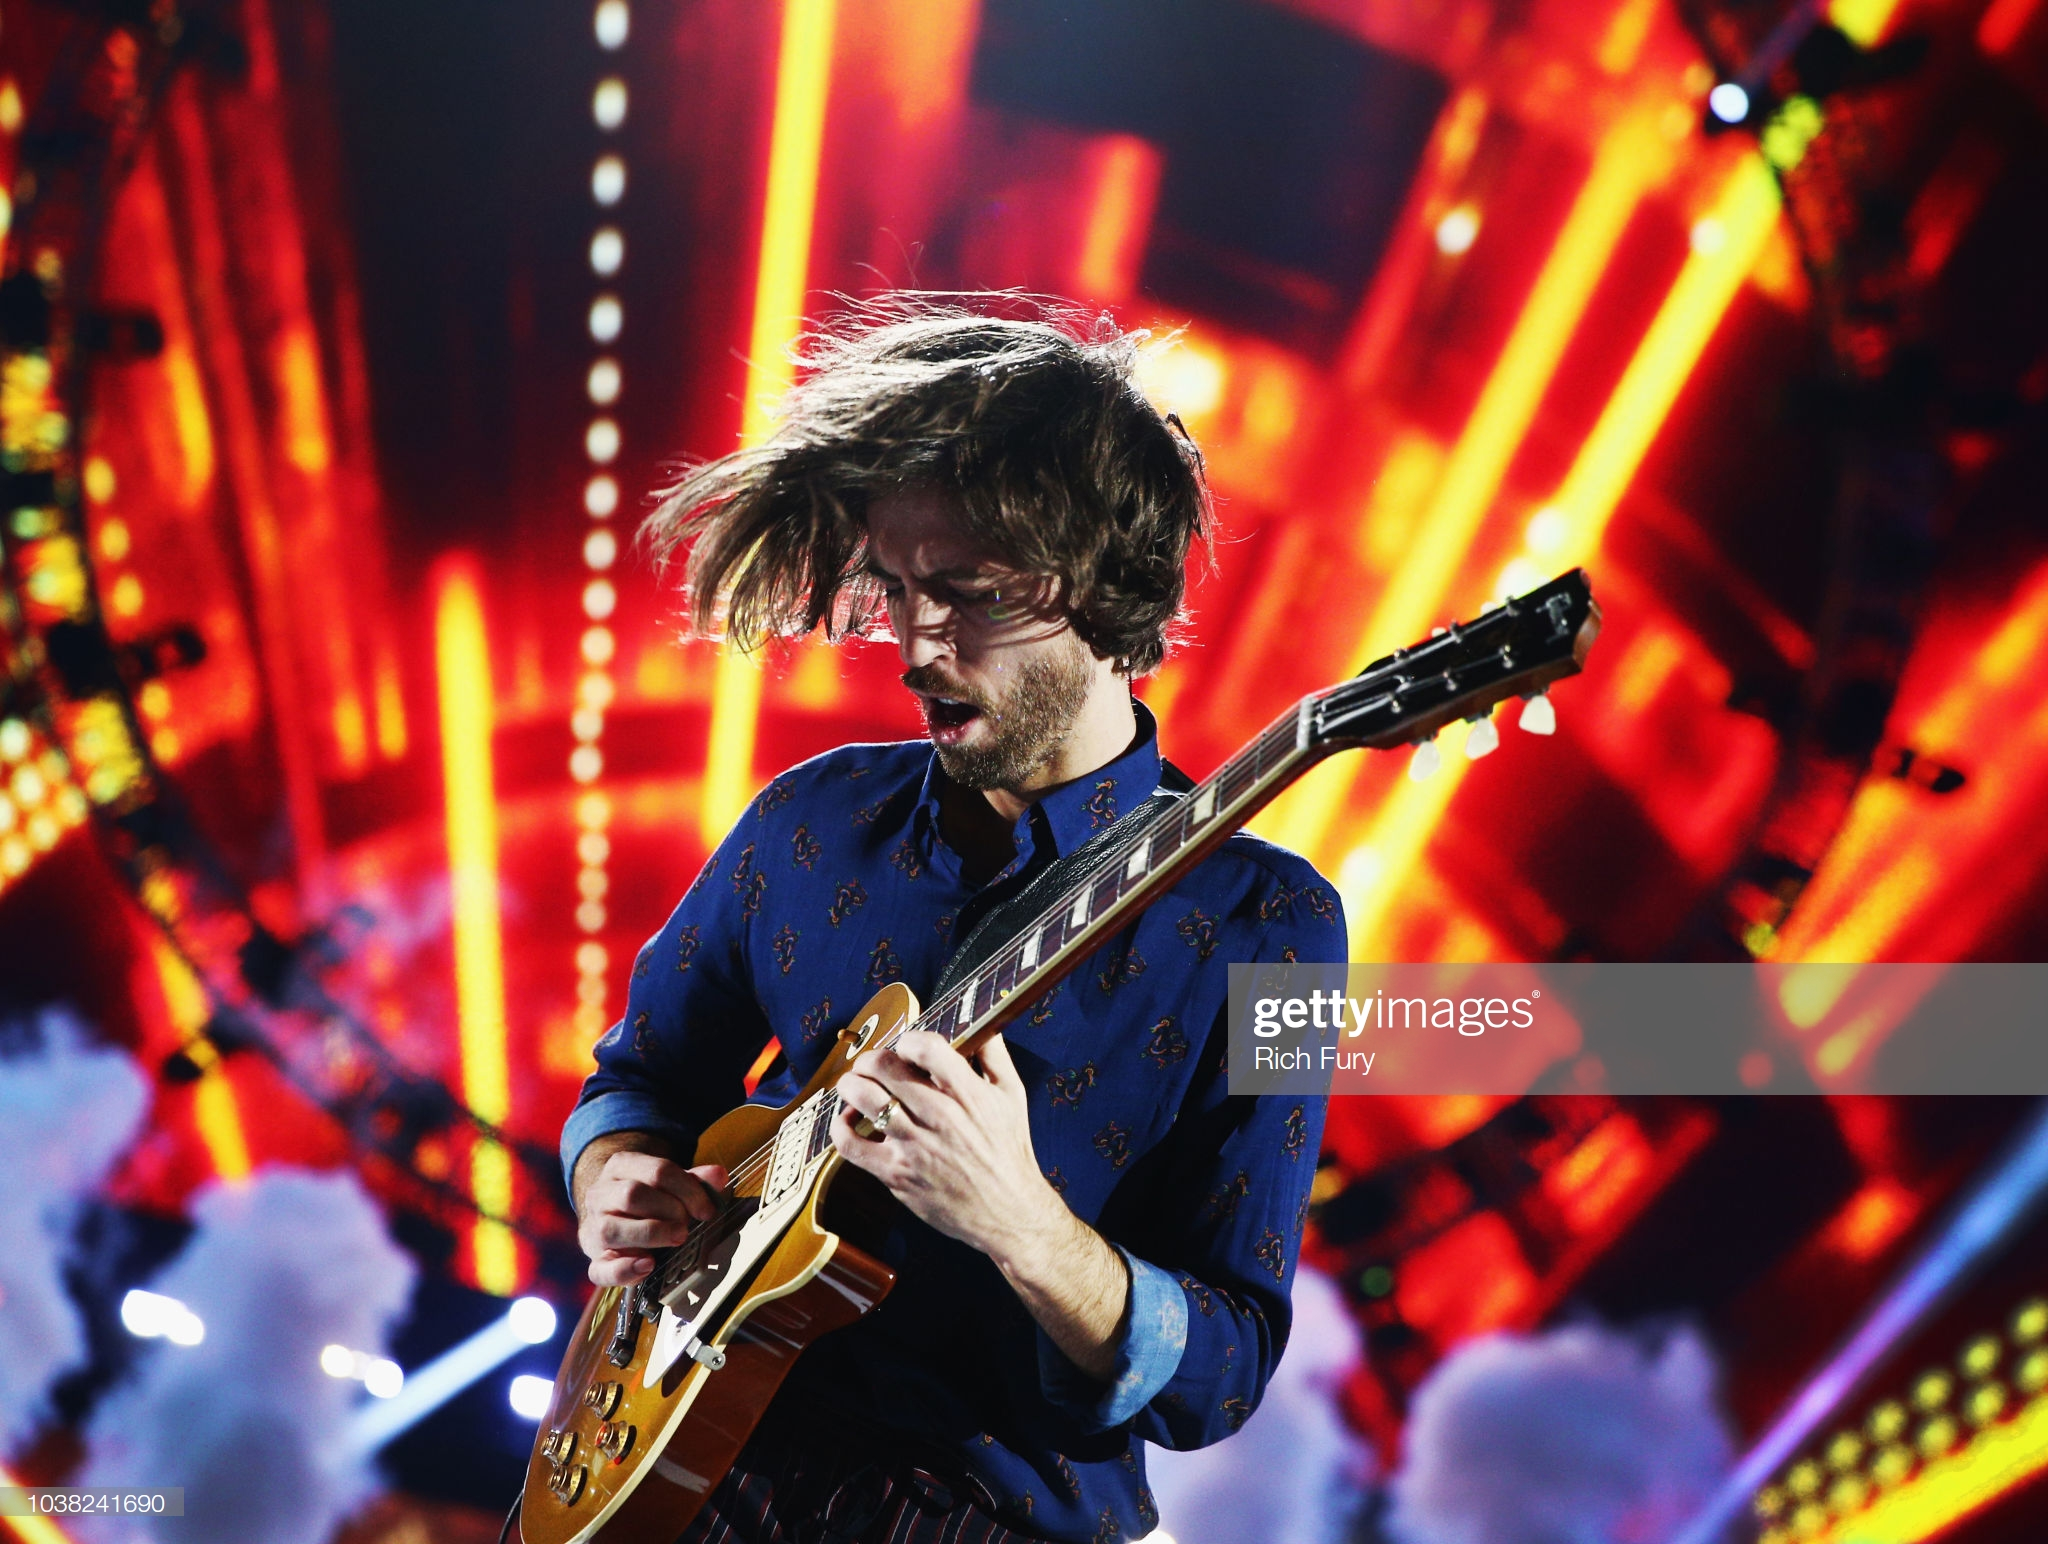 gettyimages-1038241690-2048x2048.jpg